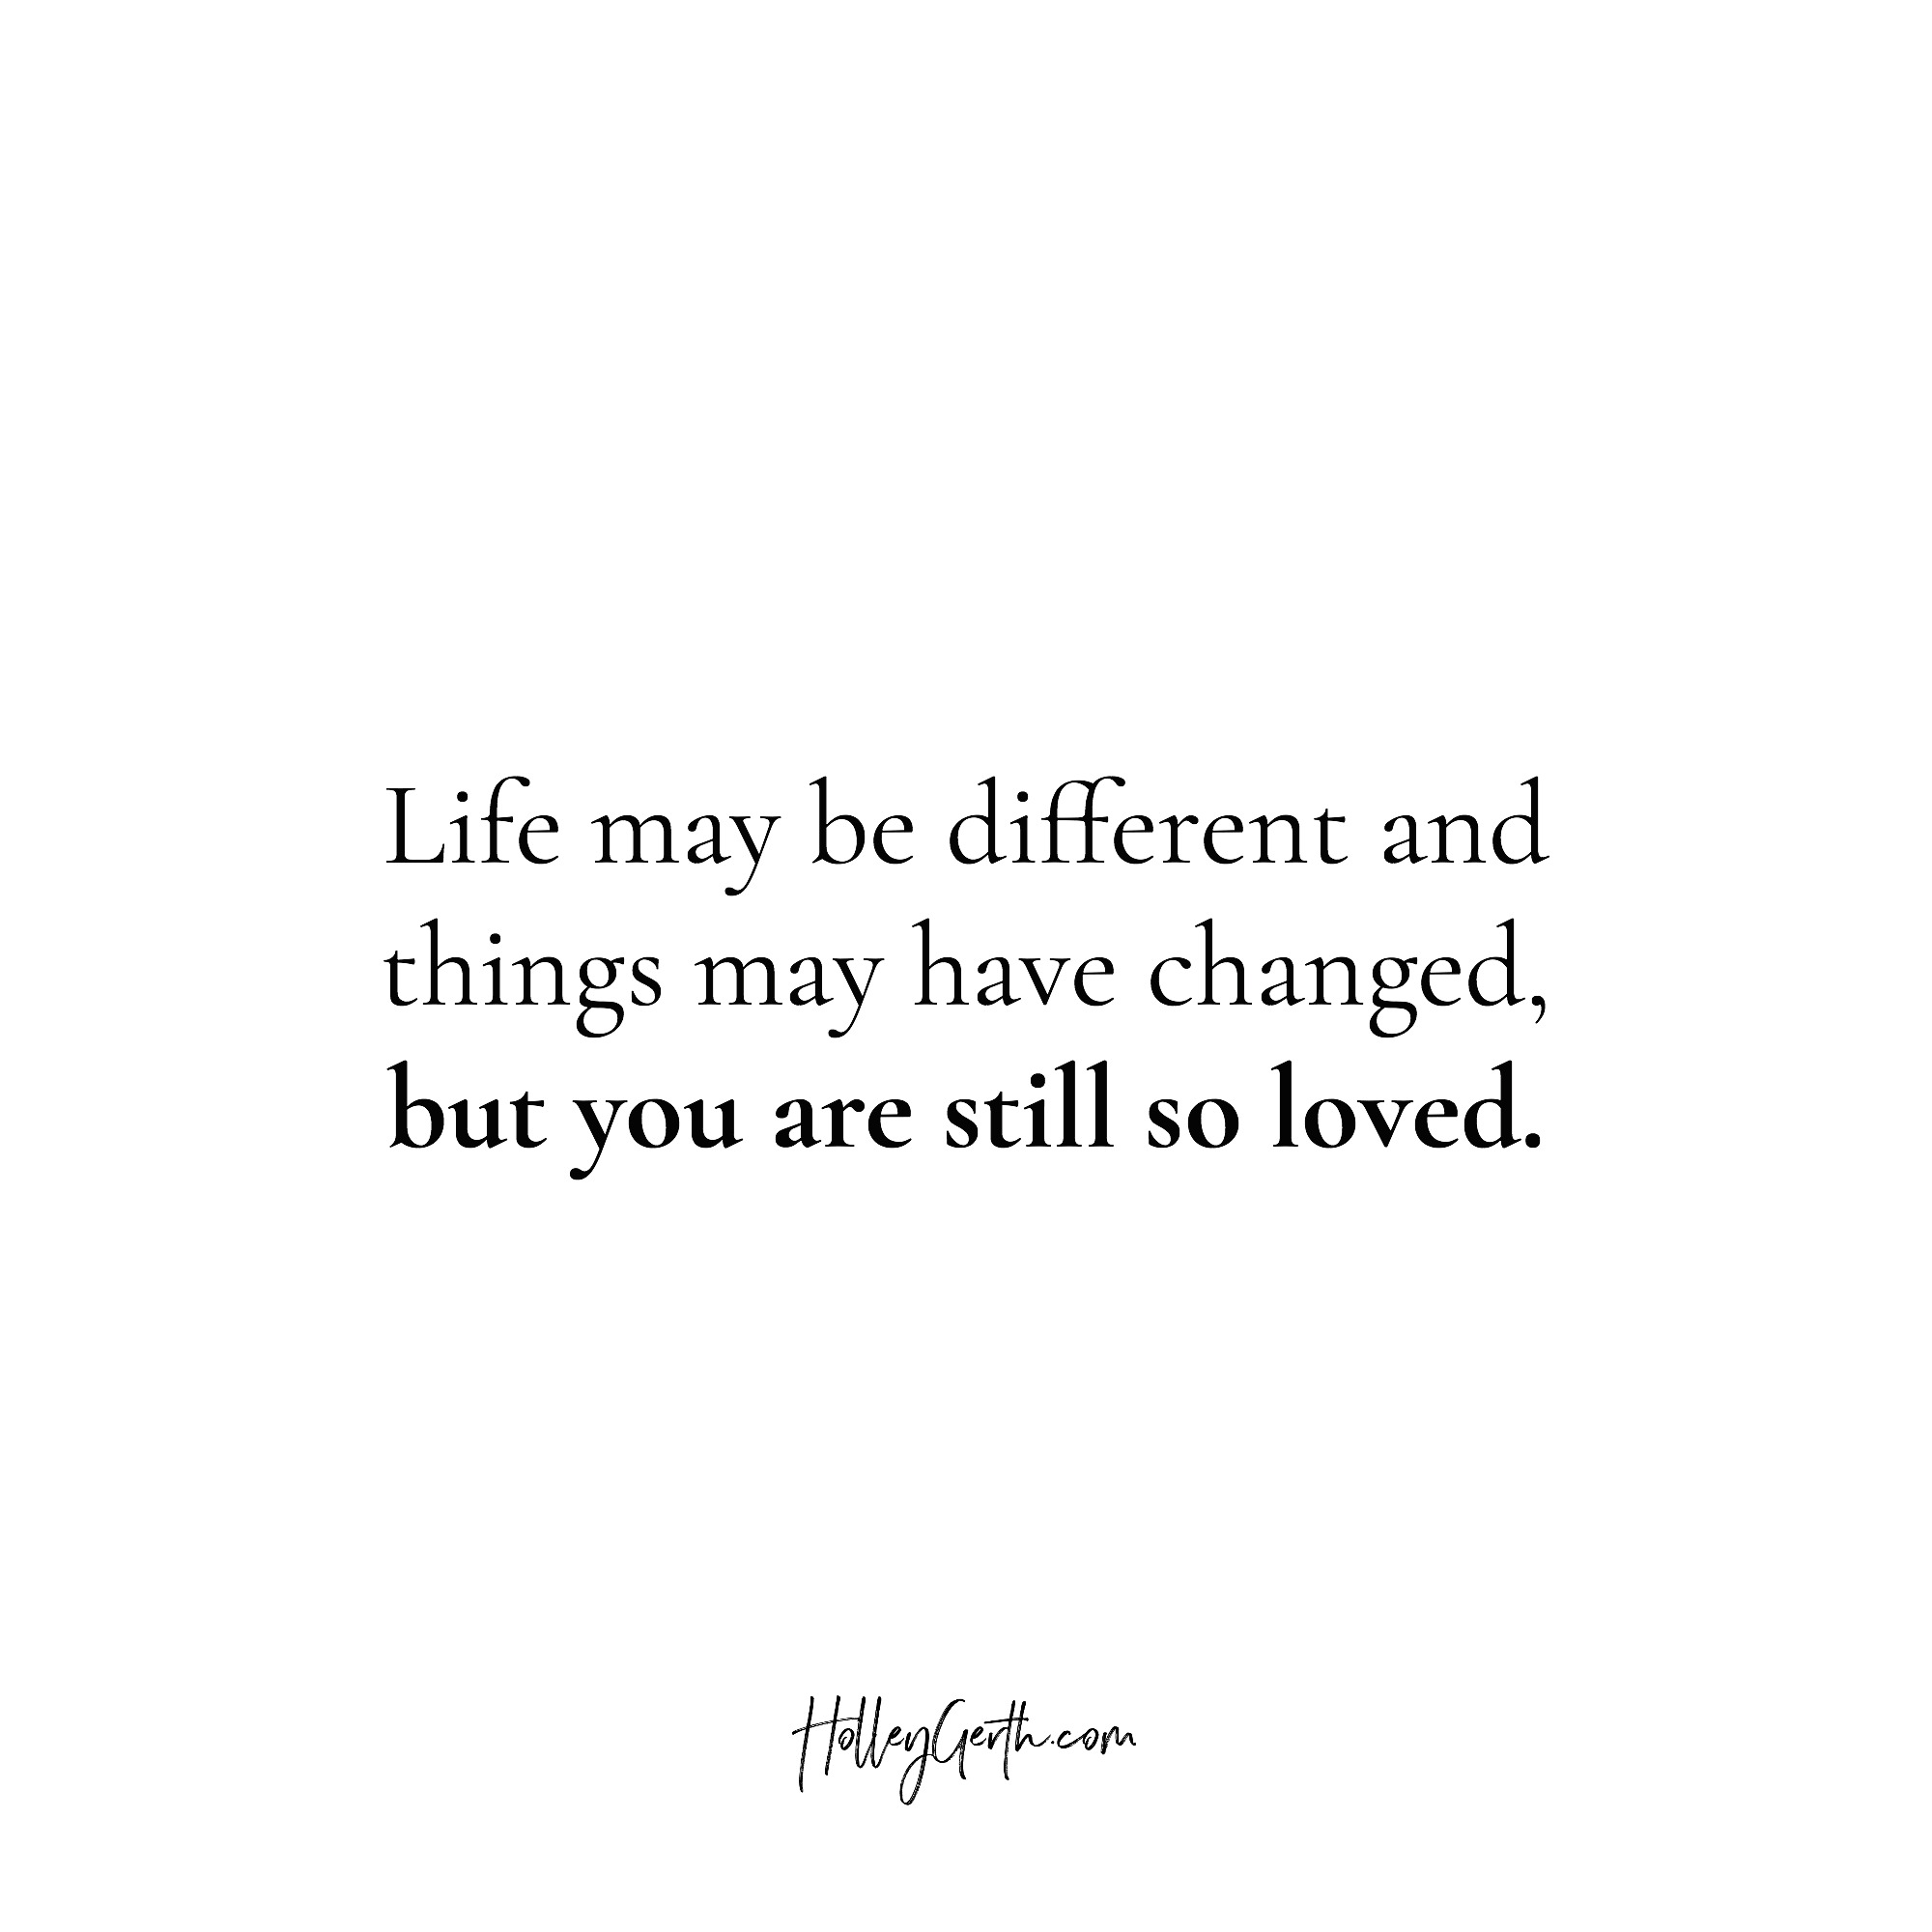 Life may be different and things may have changed, but you are still so loved.